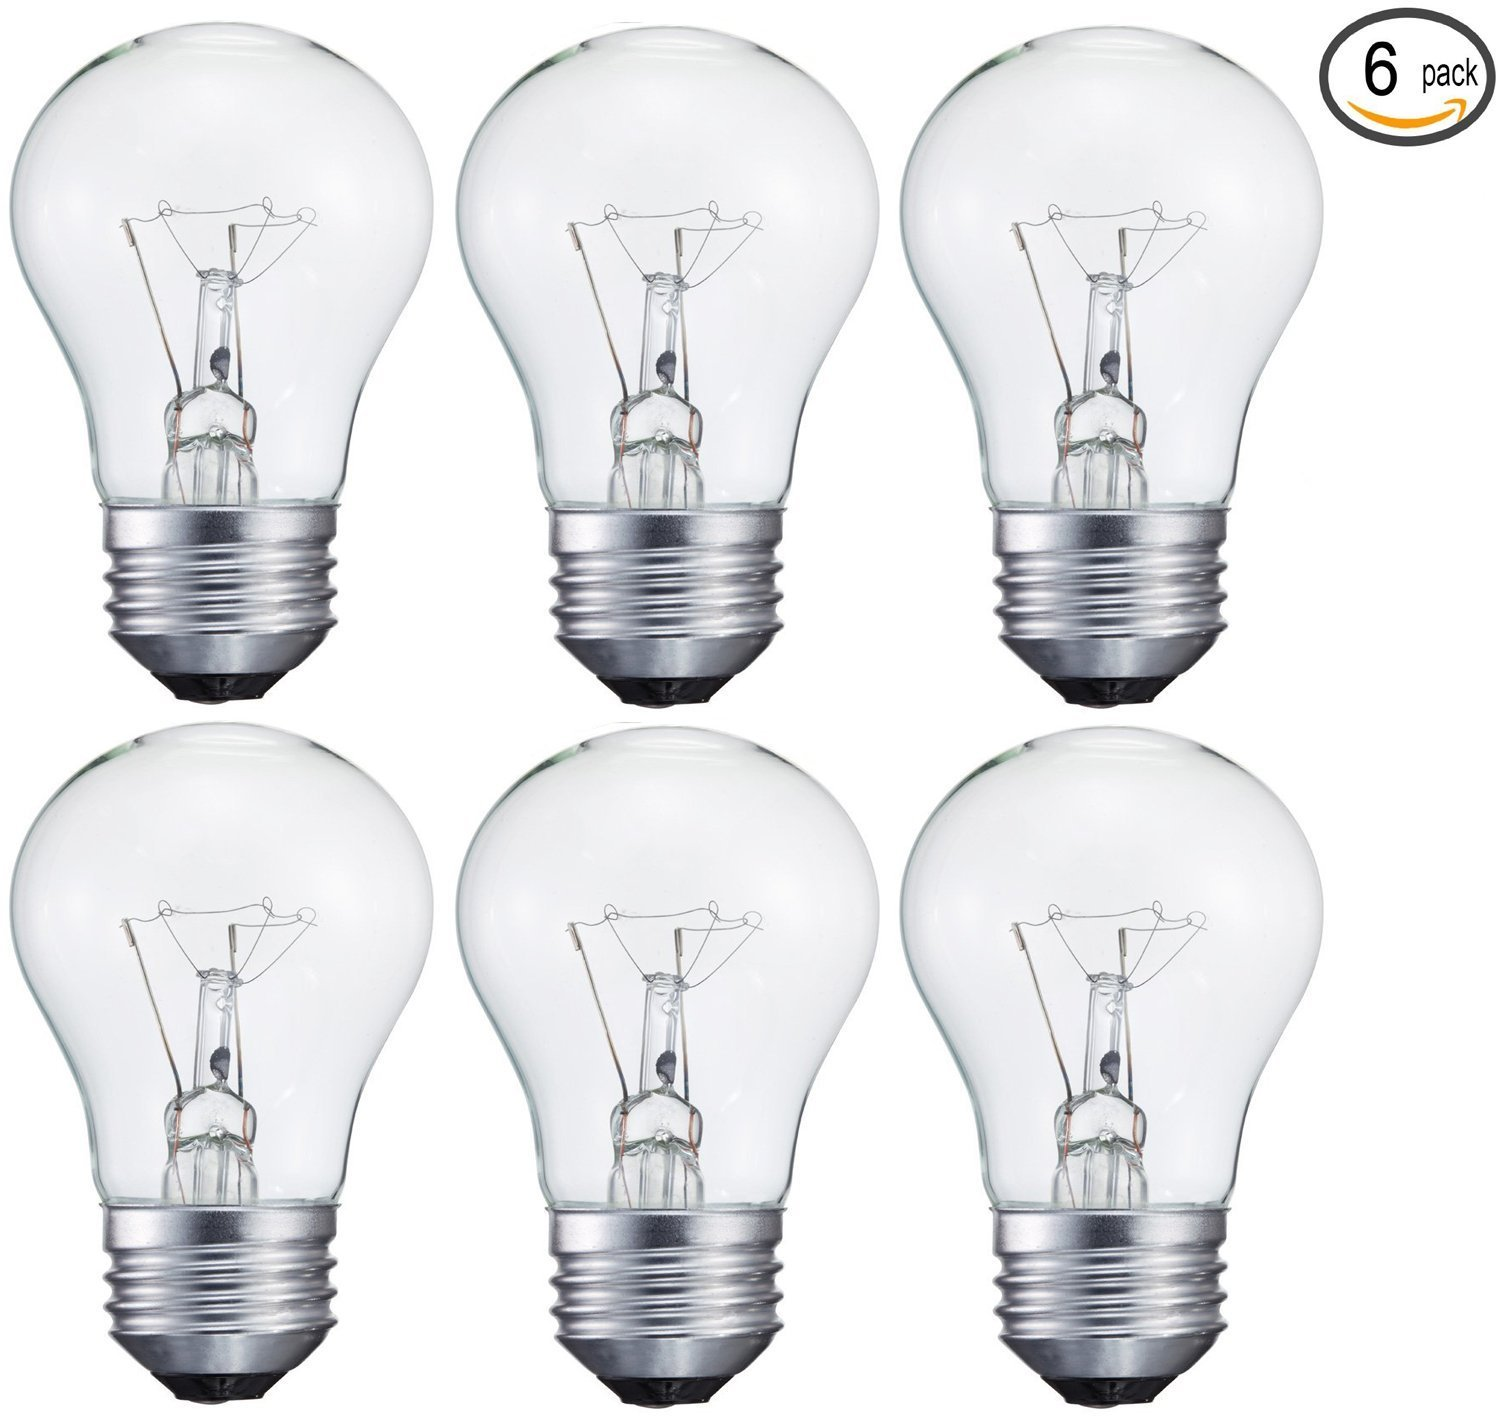 bulb light us dimmable lighting bulbs le dw equivalent led